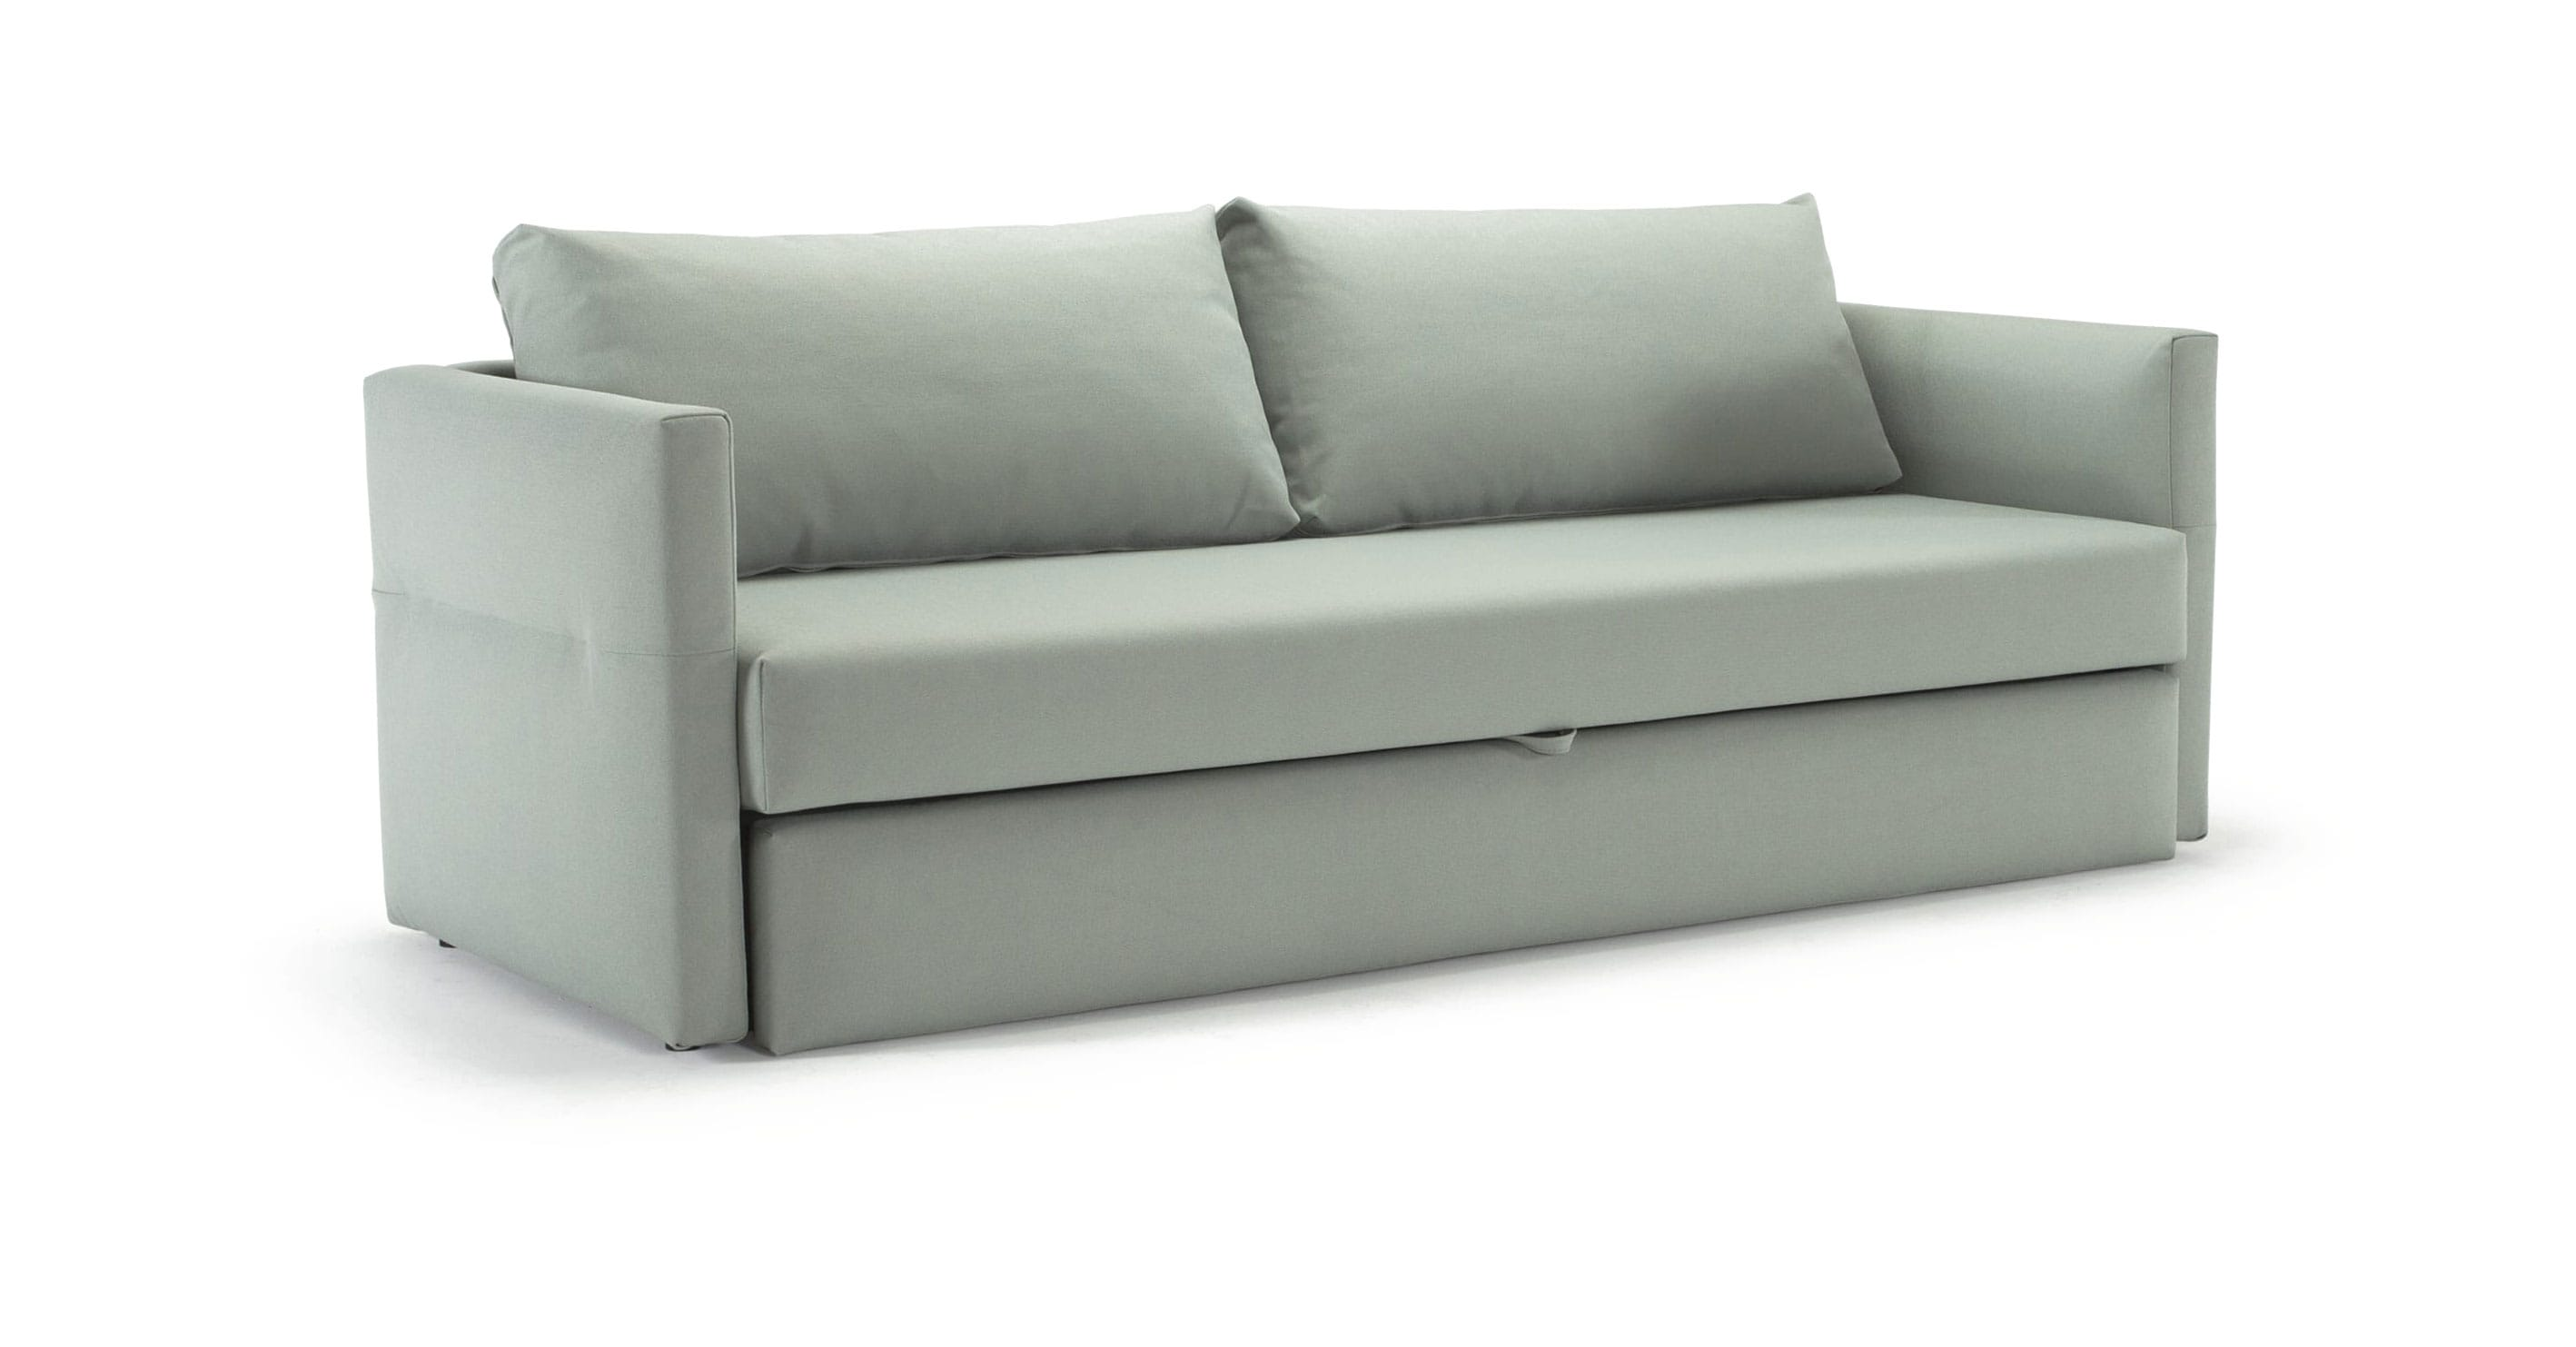 Toke Sofa Bed Full Size Coastal